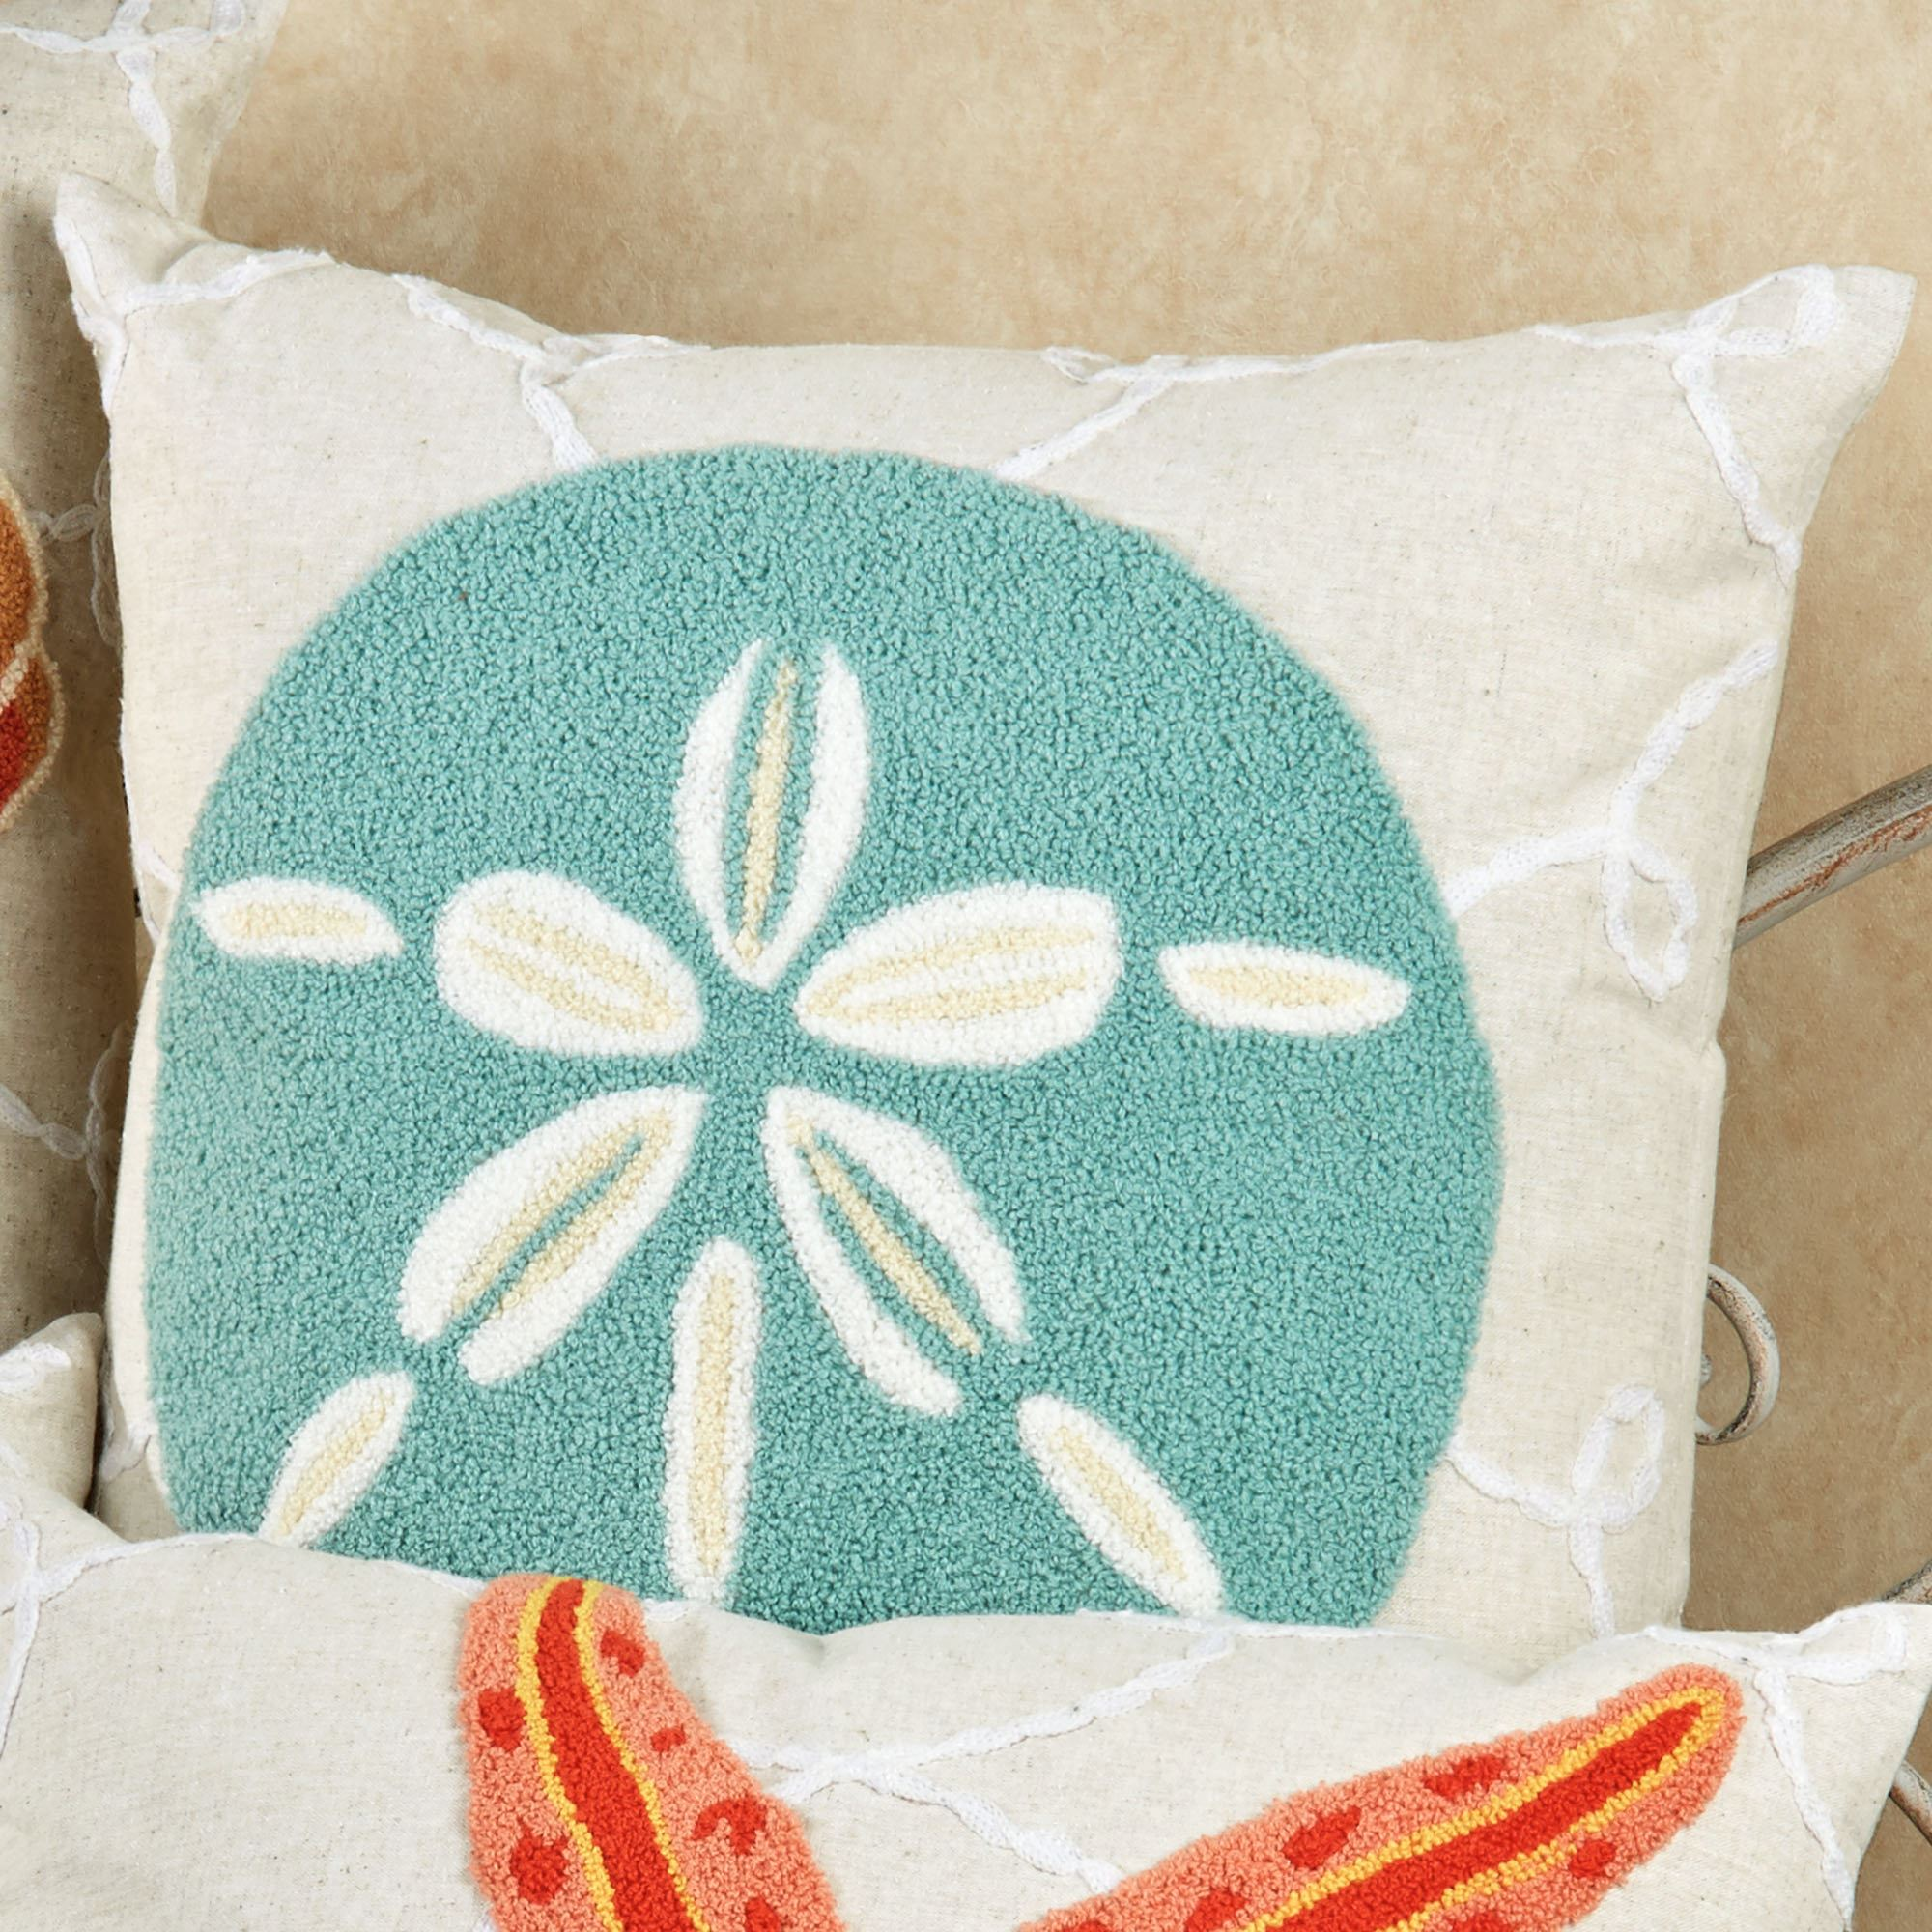 banana leaf personal beach inspirational elegant etsy a pillow pillows cushion tropical favorite covers my palm cushions from of shop